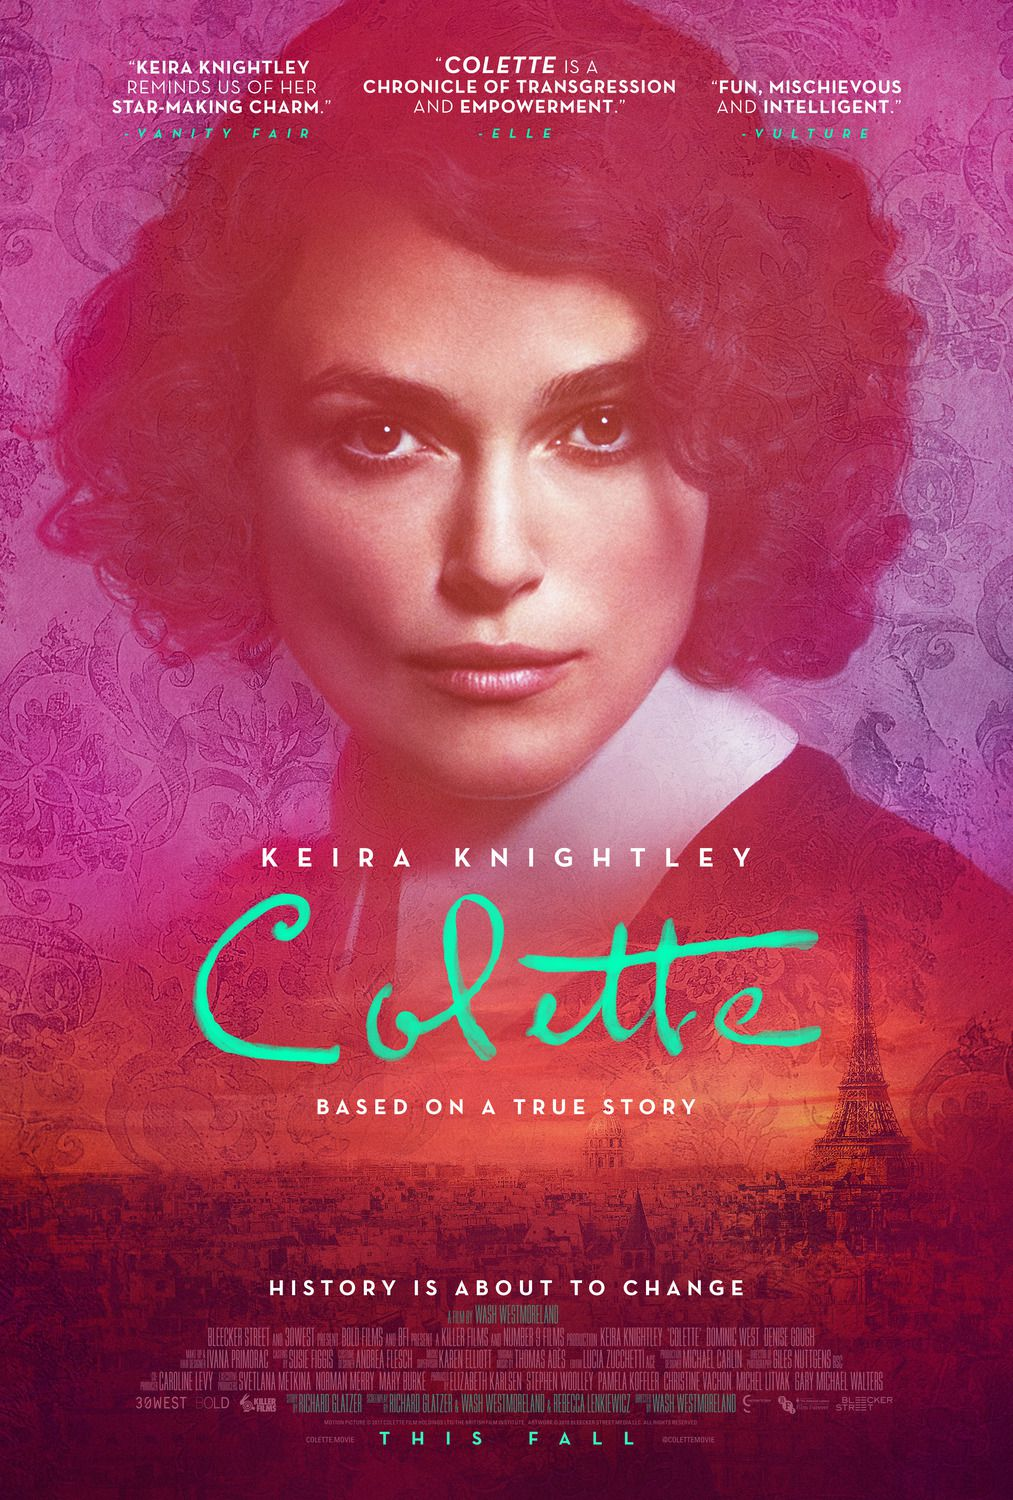 Colette (2018) - Cast: Keira Knightley, Dominic West, Fiona Shaw, Denise Gough - film poster